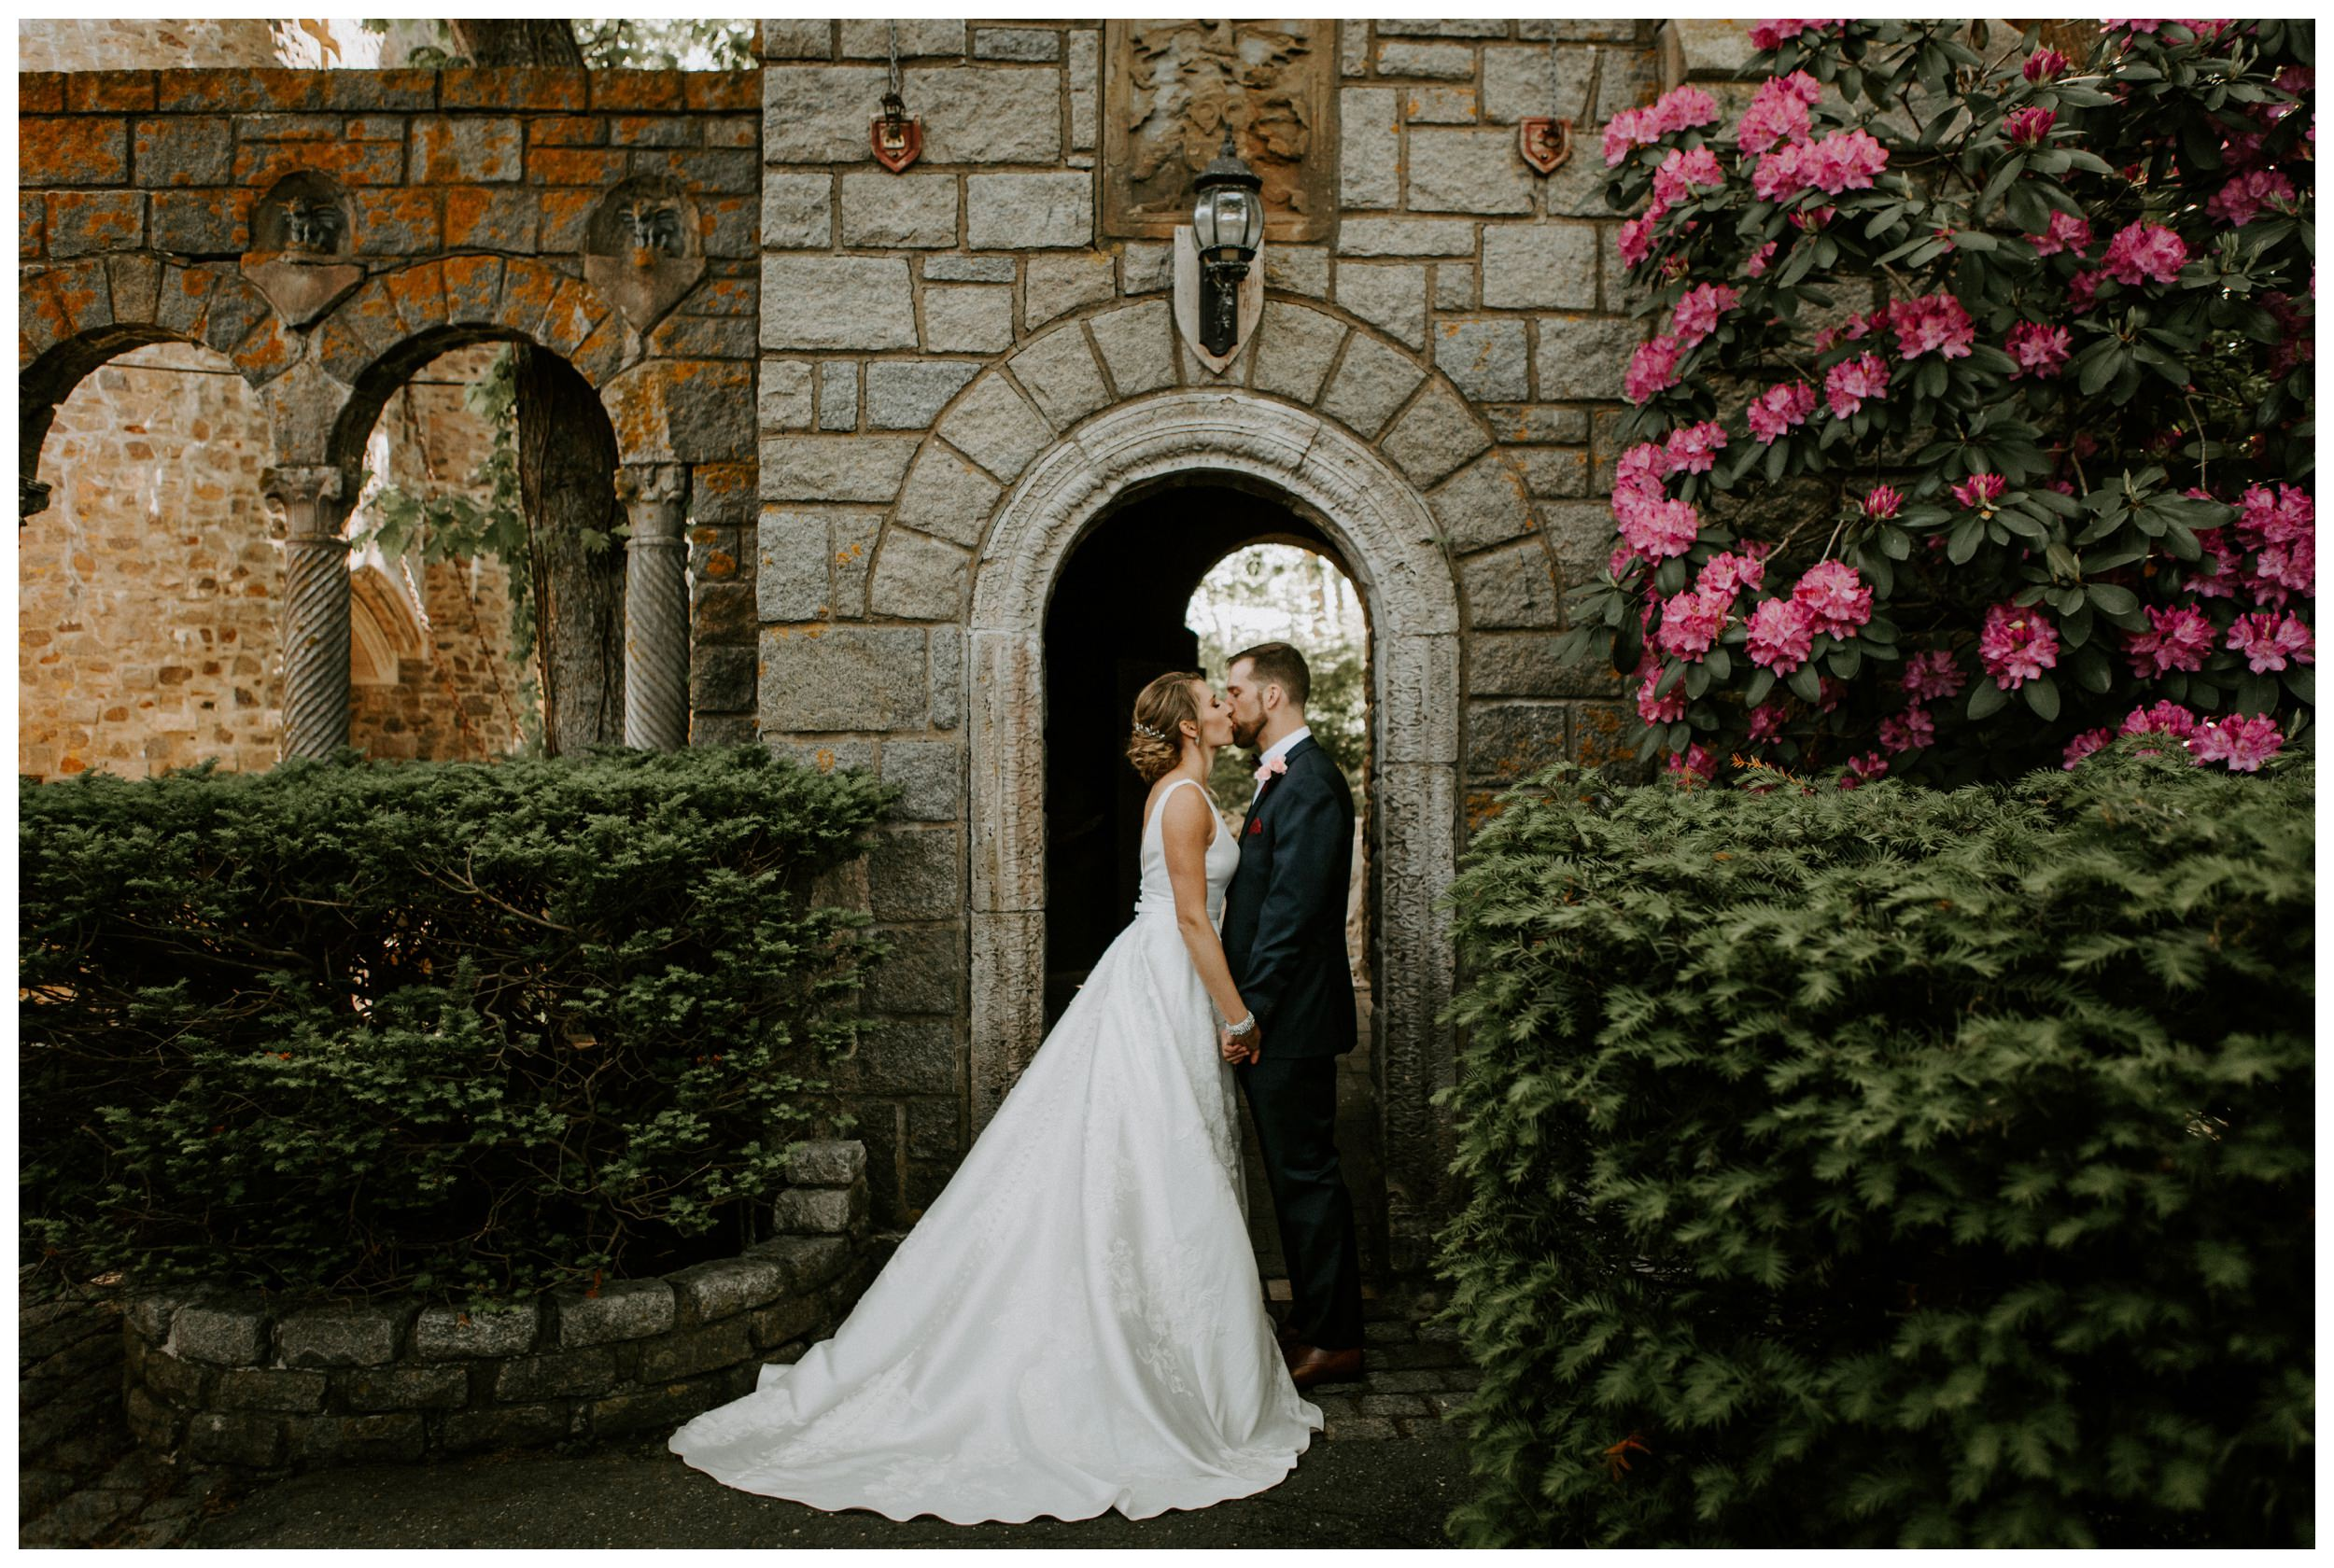 romantic-candlelit-wedding-hammond-castle-museum-gloucester32.jpg